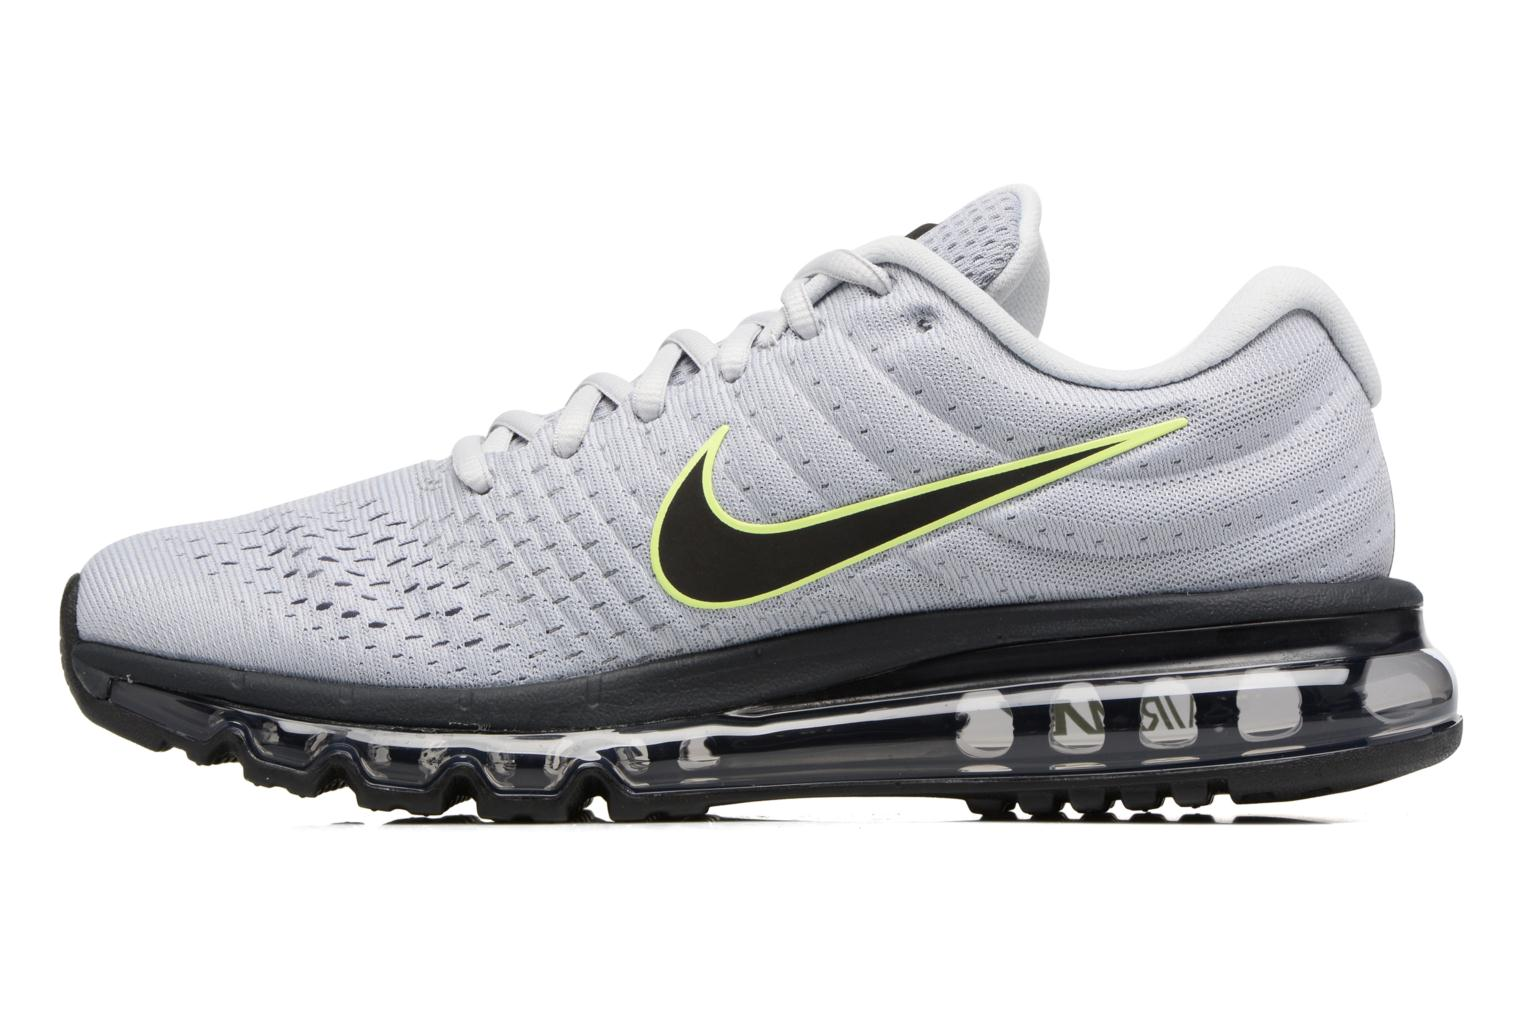 Nike Air Max 2017 Wolf Grey/Black-Pure Platinum-Anthracite